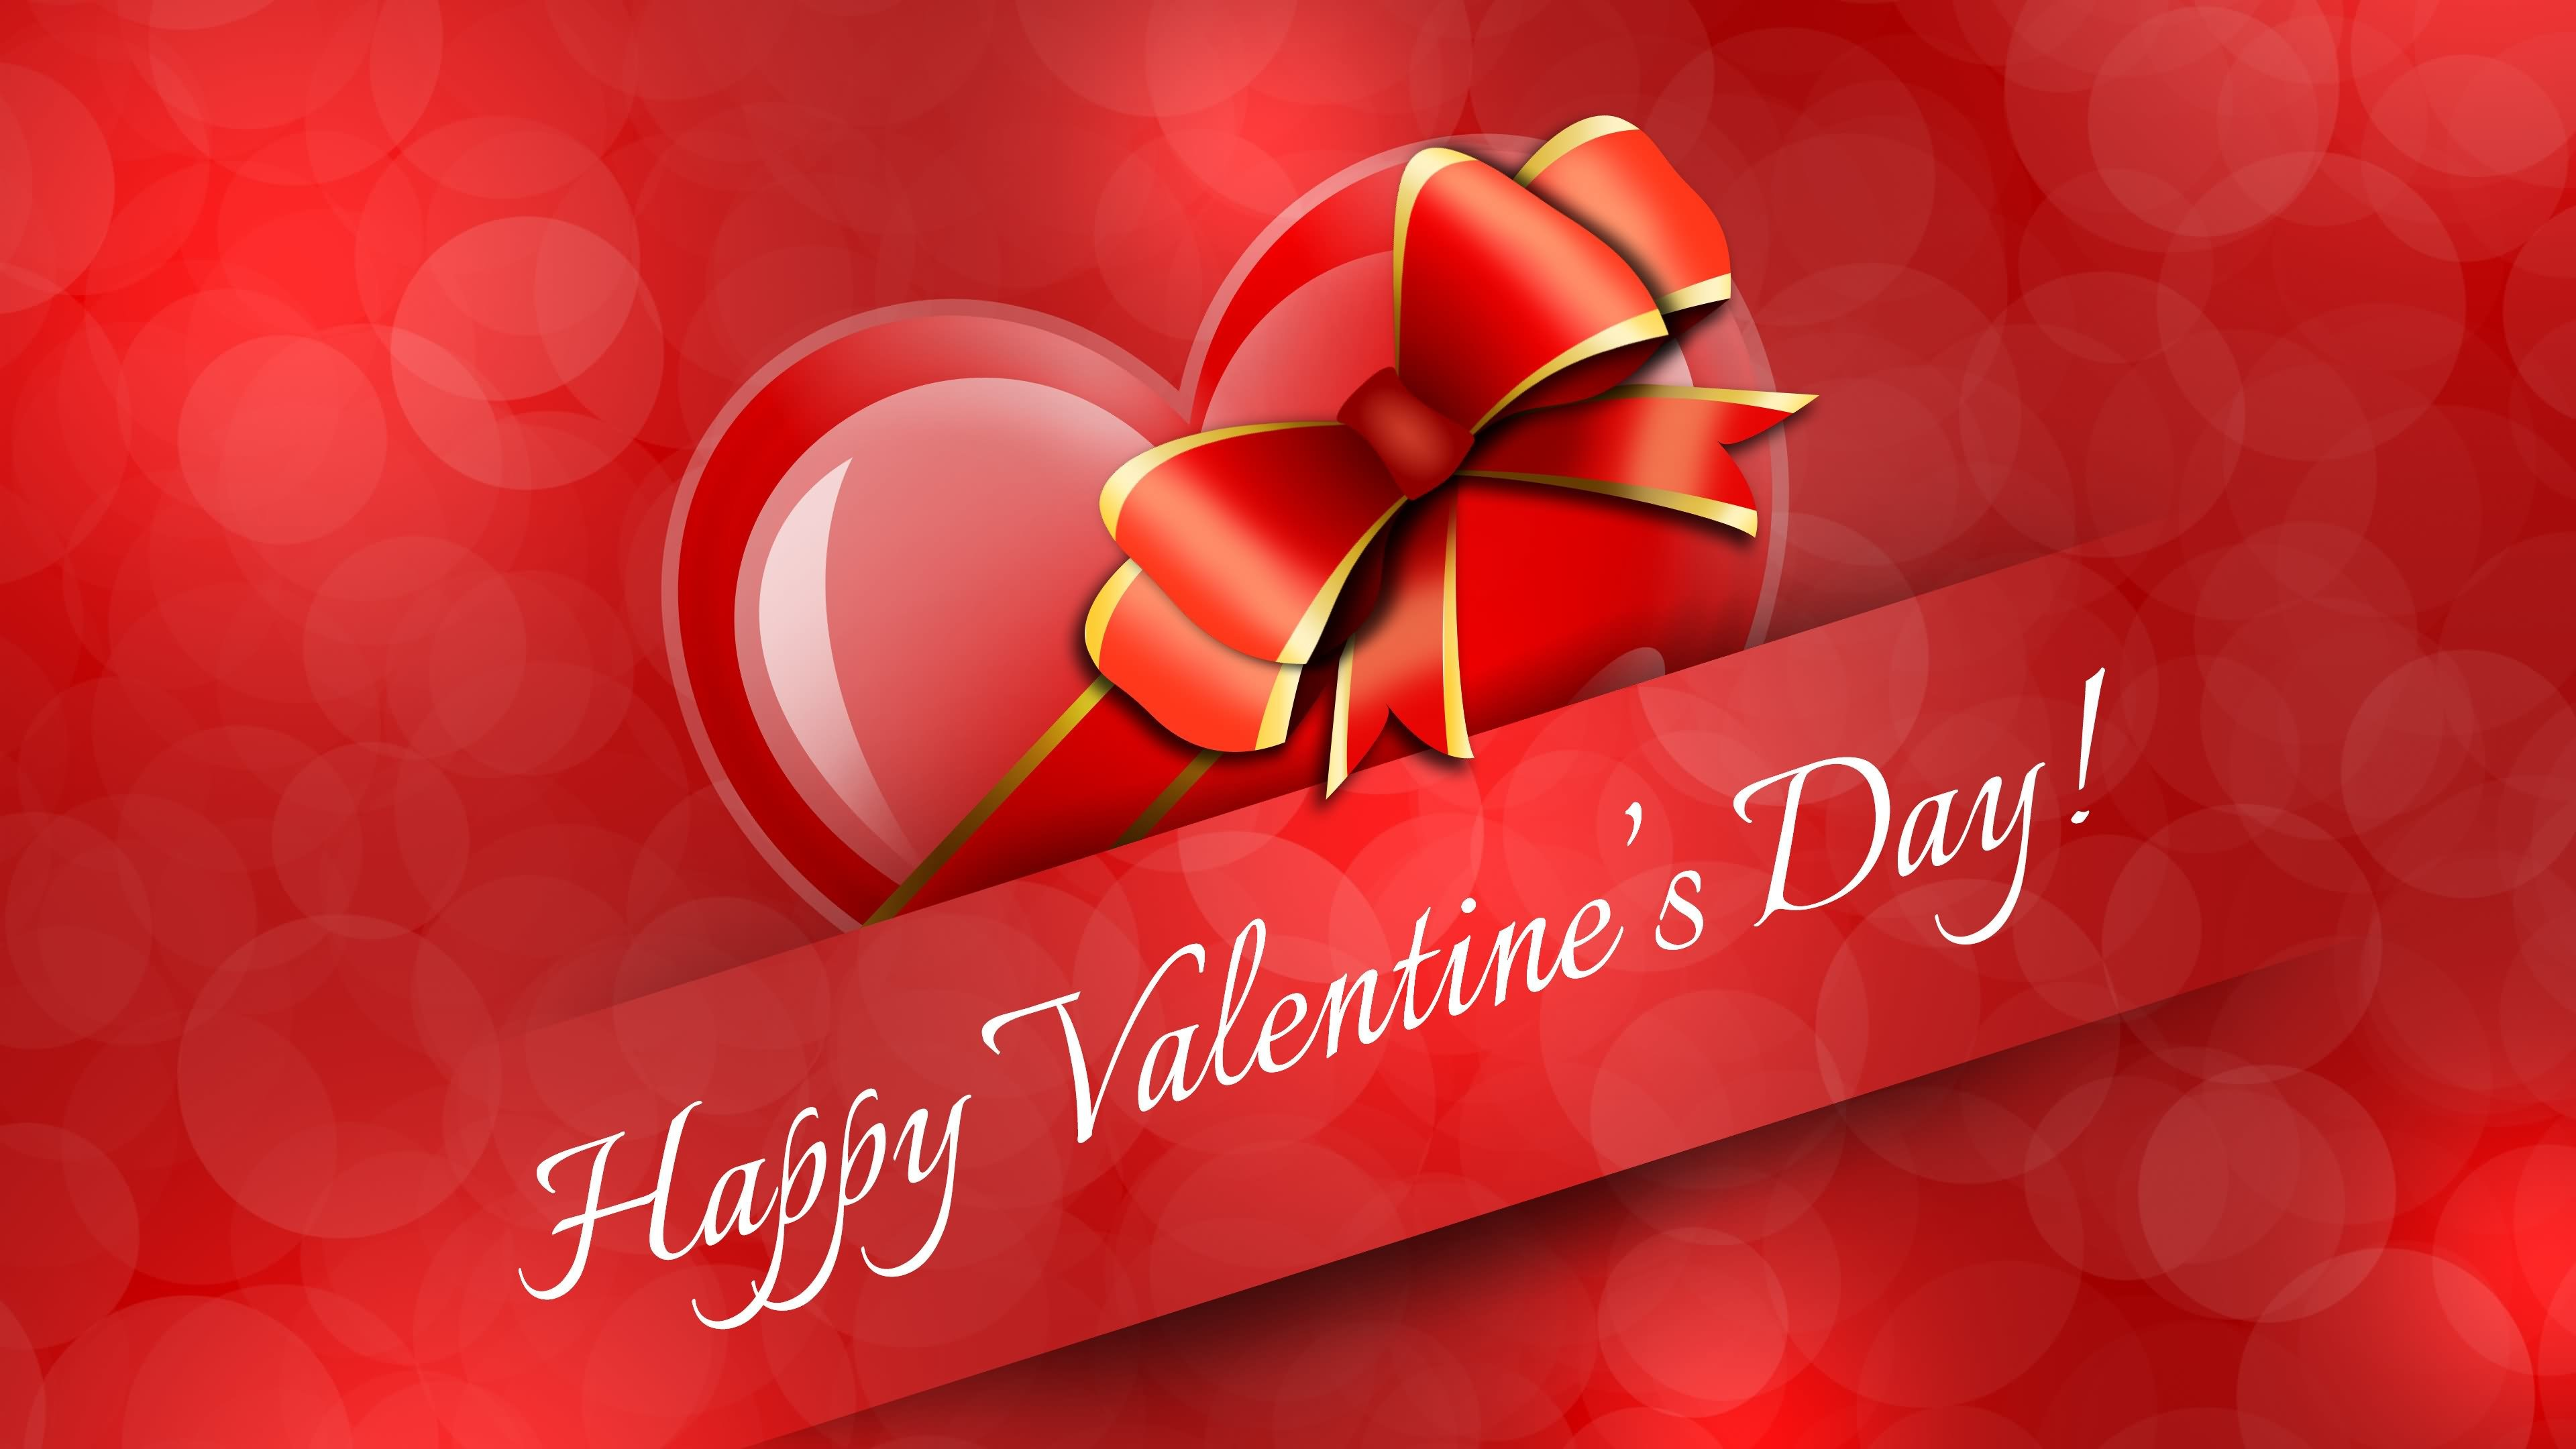 3840x2160 Happy Valentines Day HD Wallpaper Image